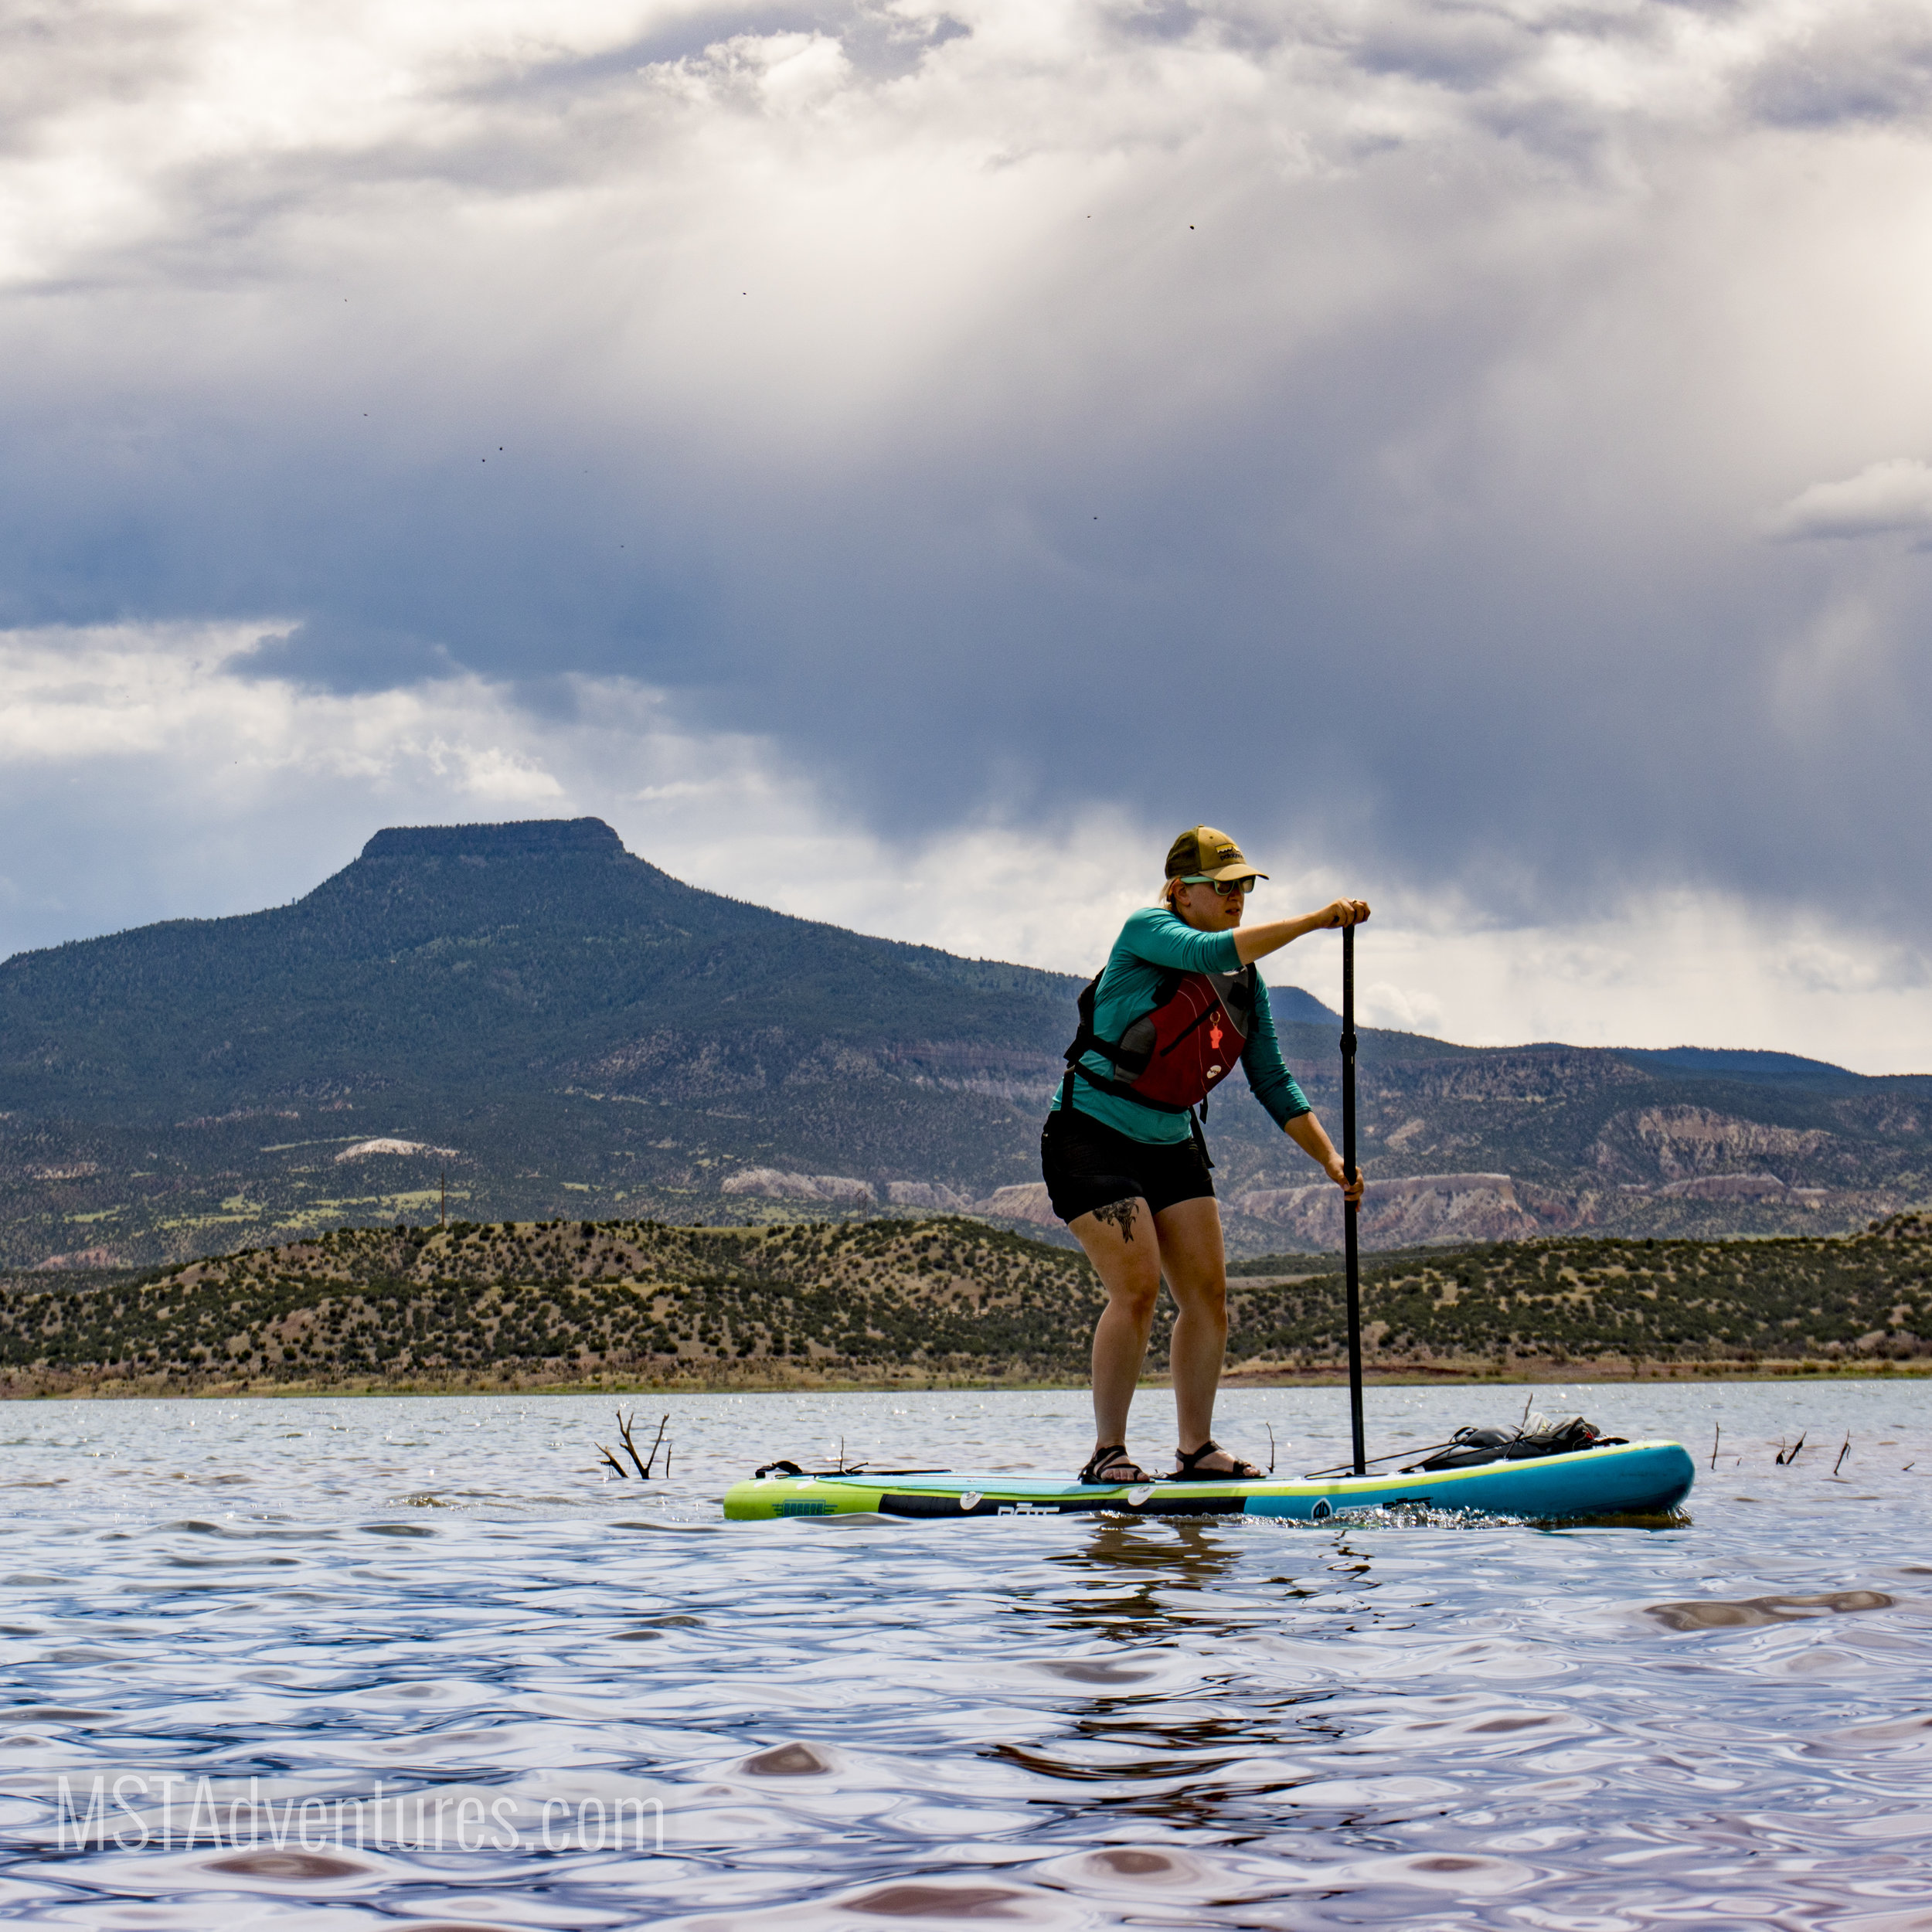 Rental SUP and PFD on Abiquiu Lake, Pedernal in background. Abiquiu, NM; Campsite and Sunset at Abiquiu Lake.